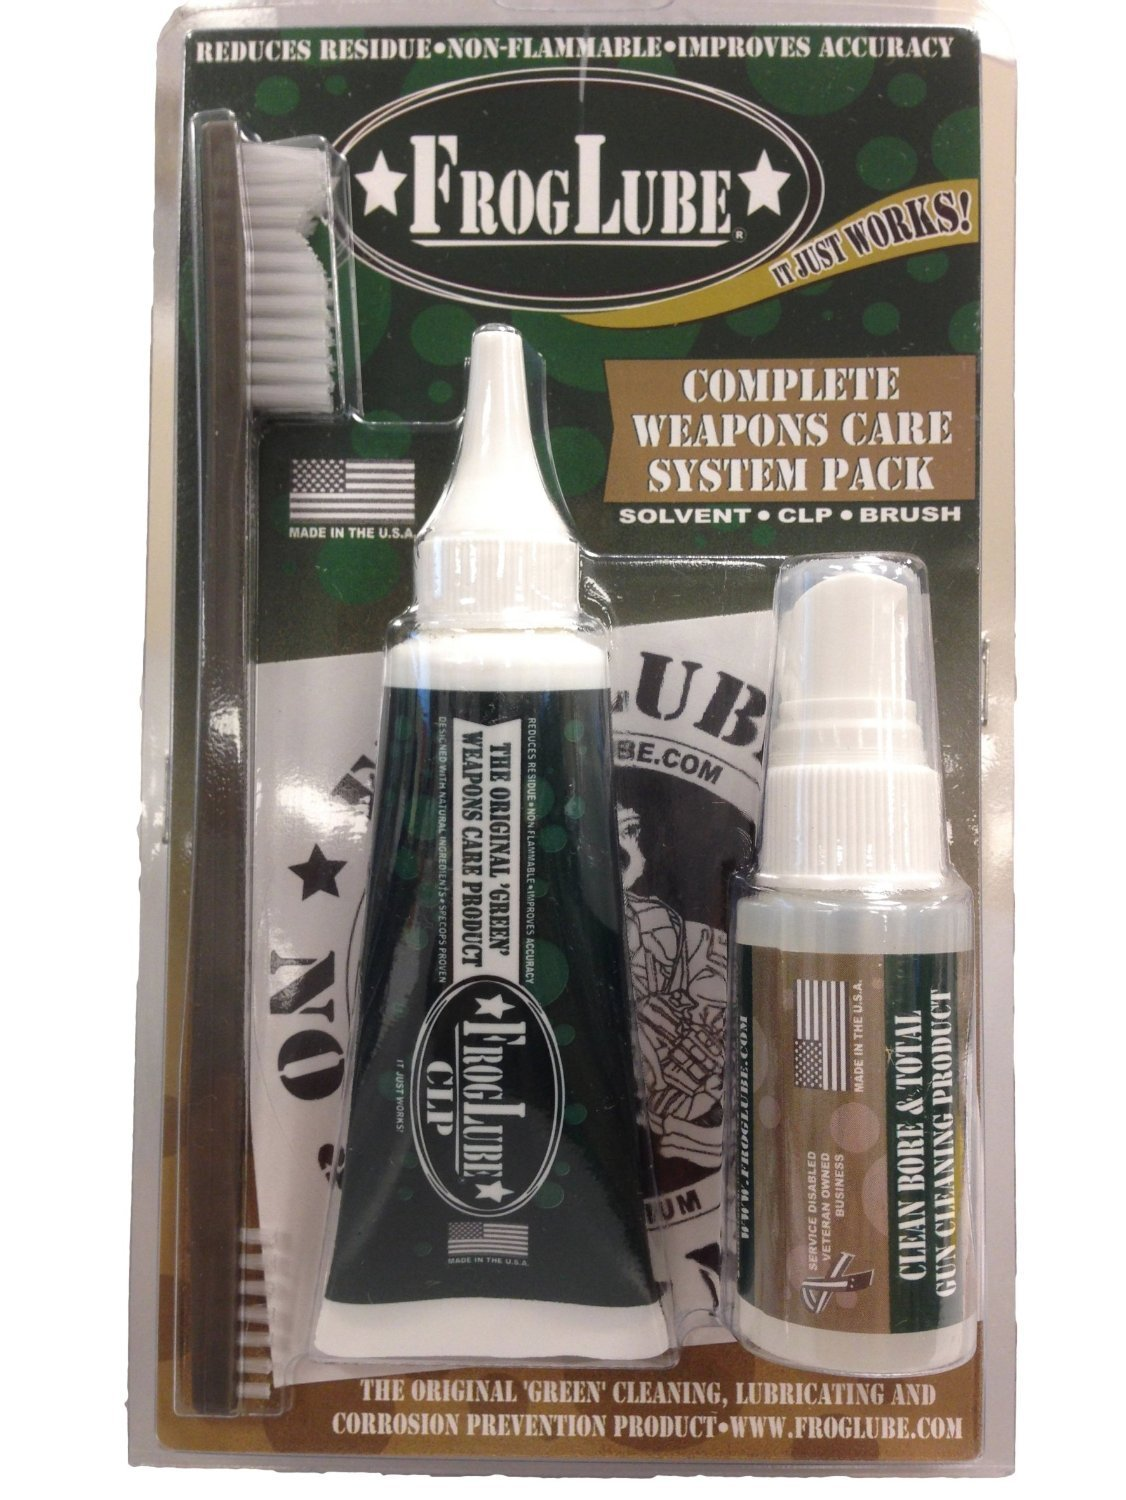 Frog Lube Clamshell Pack System Kit (1 oz Solvent/1.5 oz Extreme Liquid)